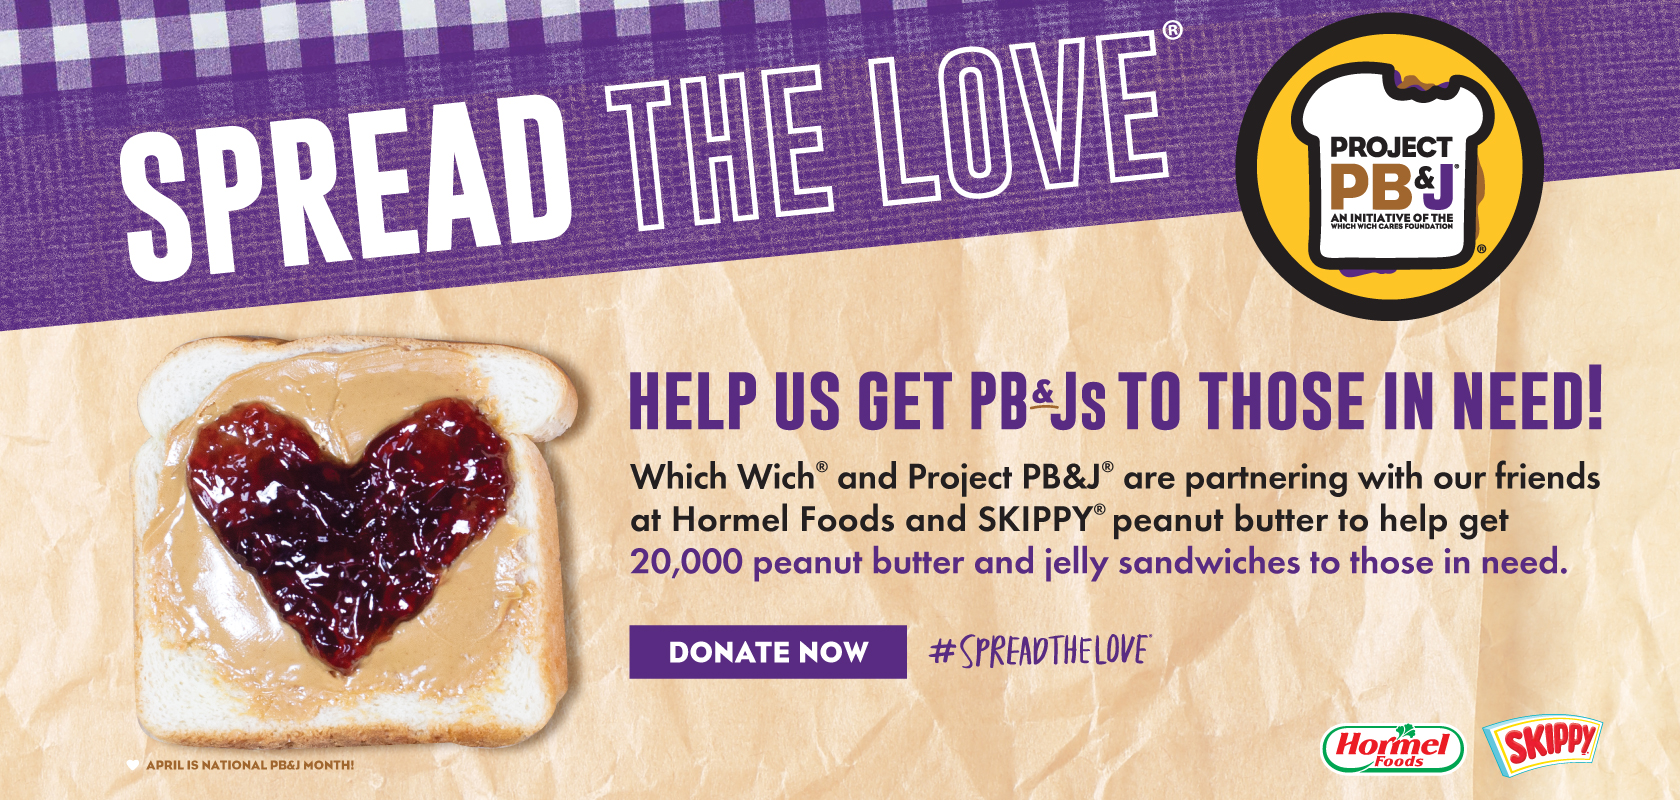 Spread the Love! Help us get PB&J's to those in need! Donate now!